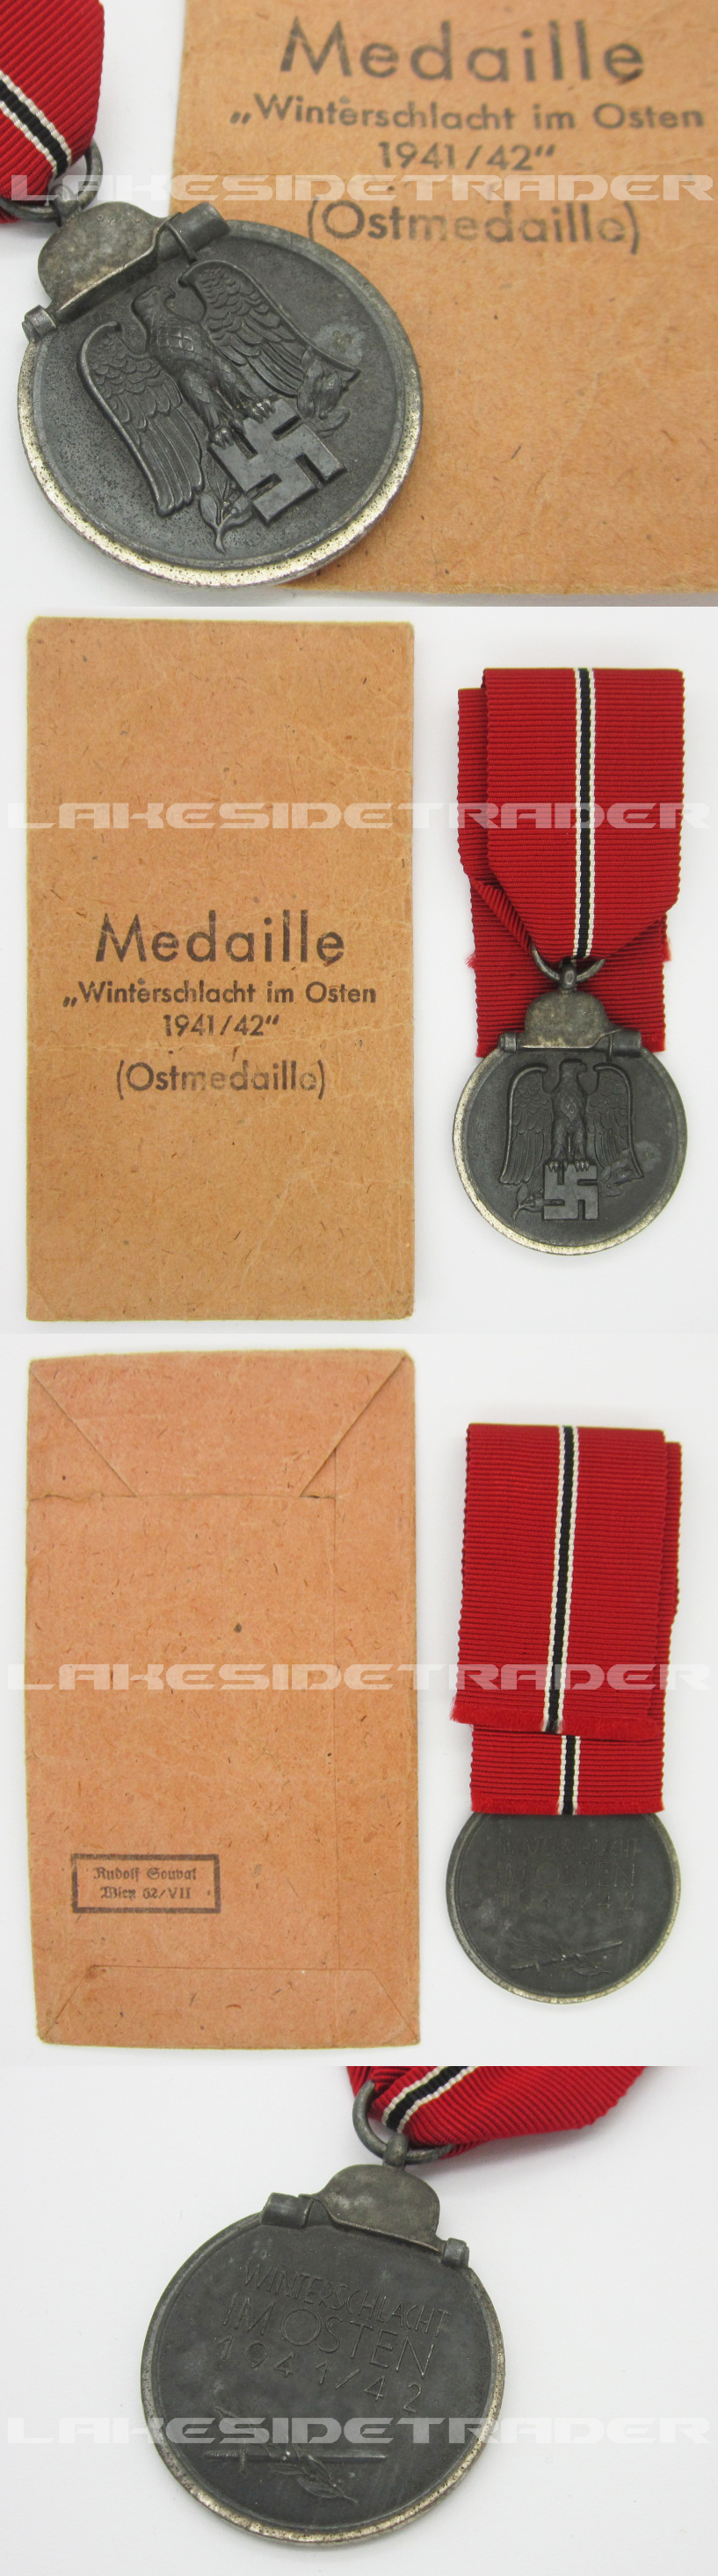 Eastern Front Medal and Packet by R. Souval